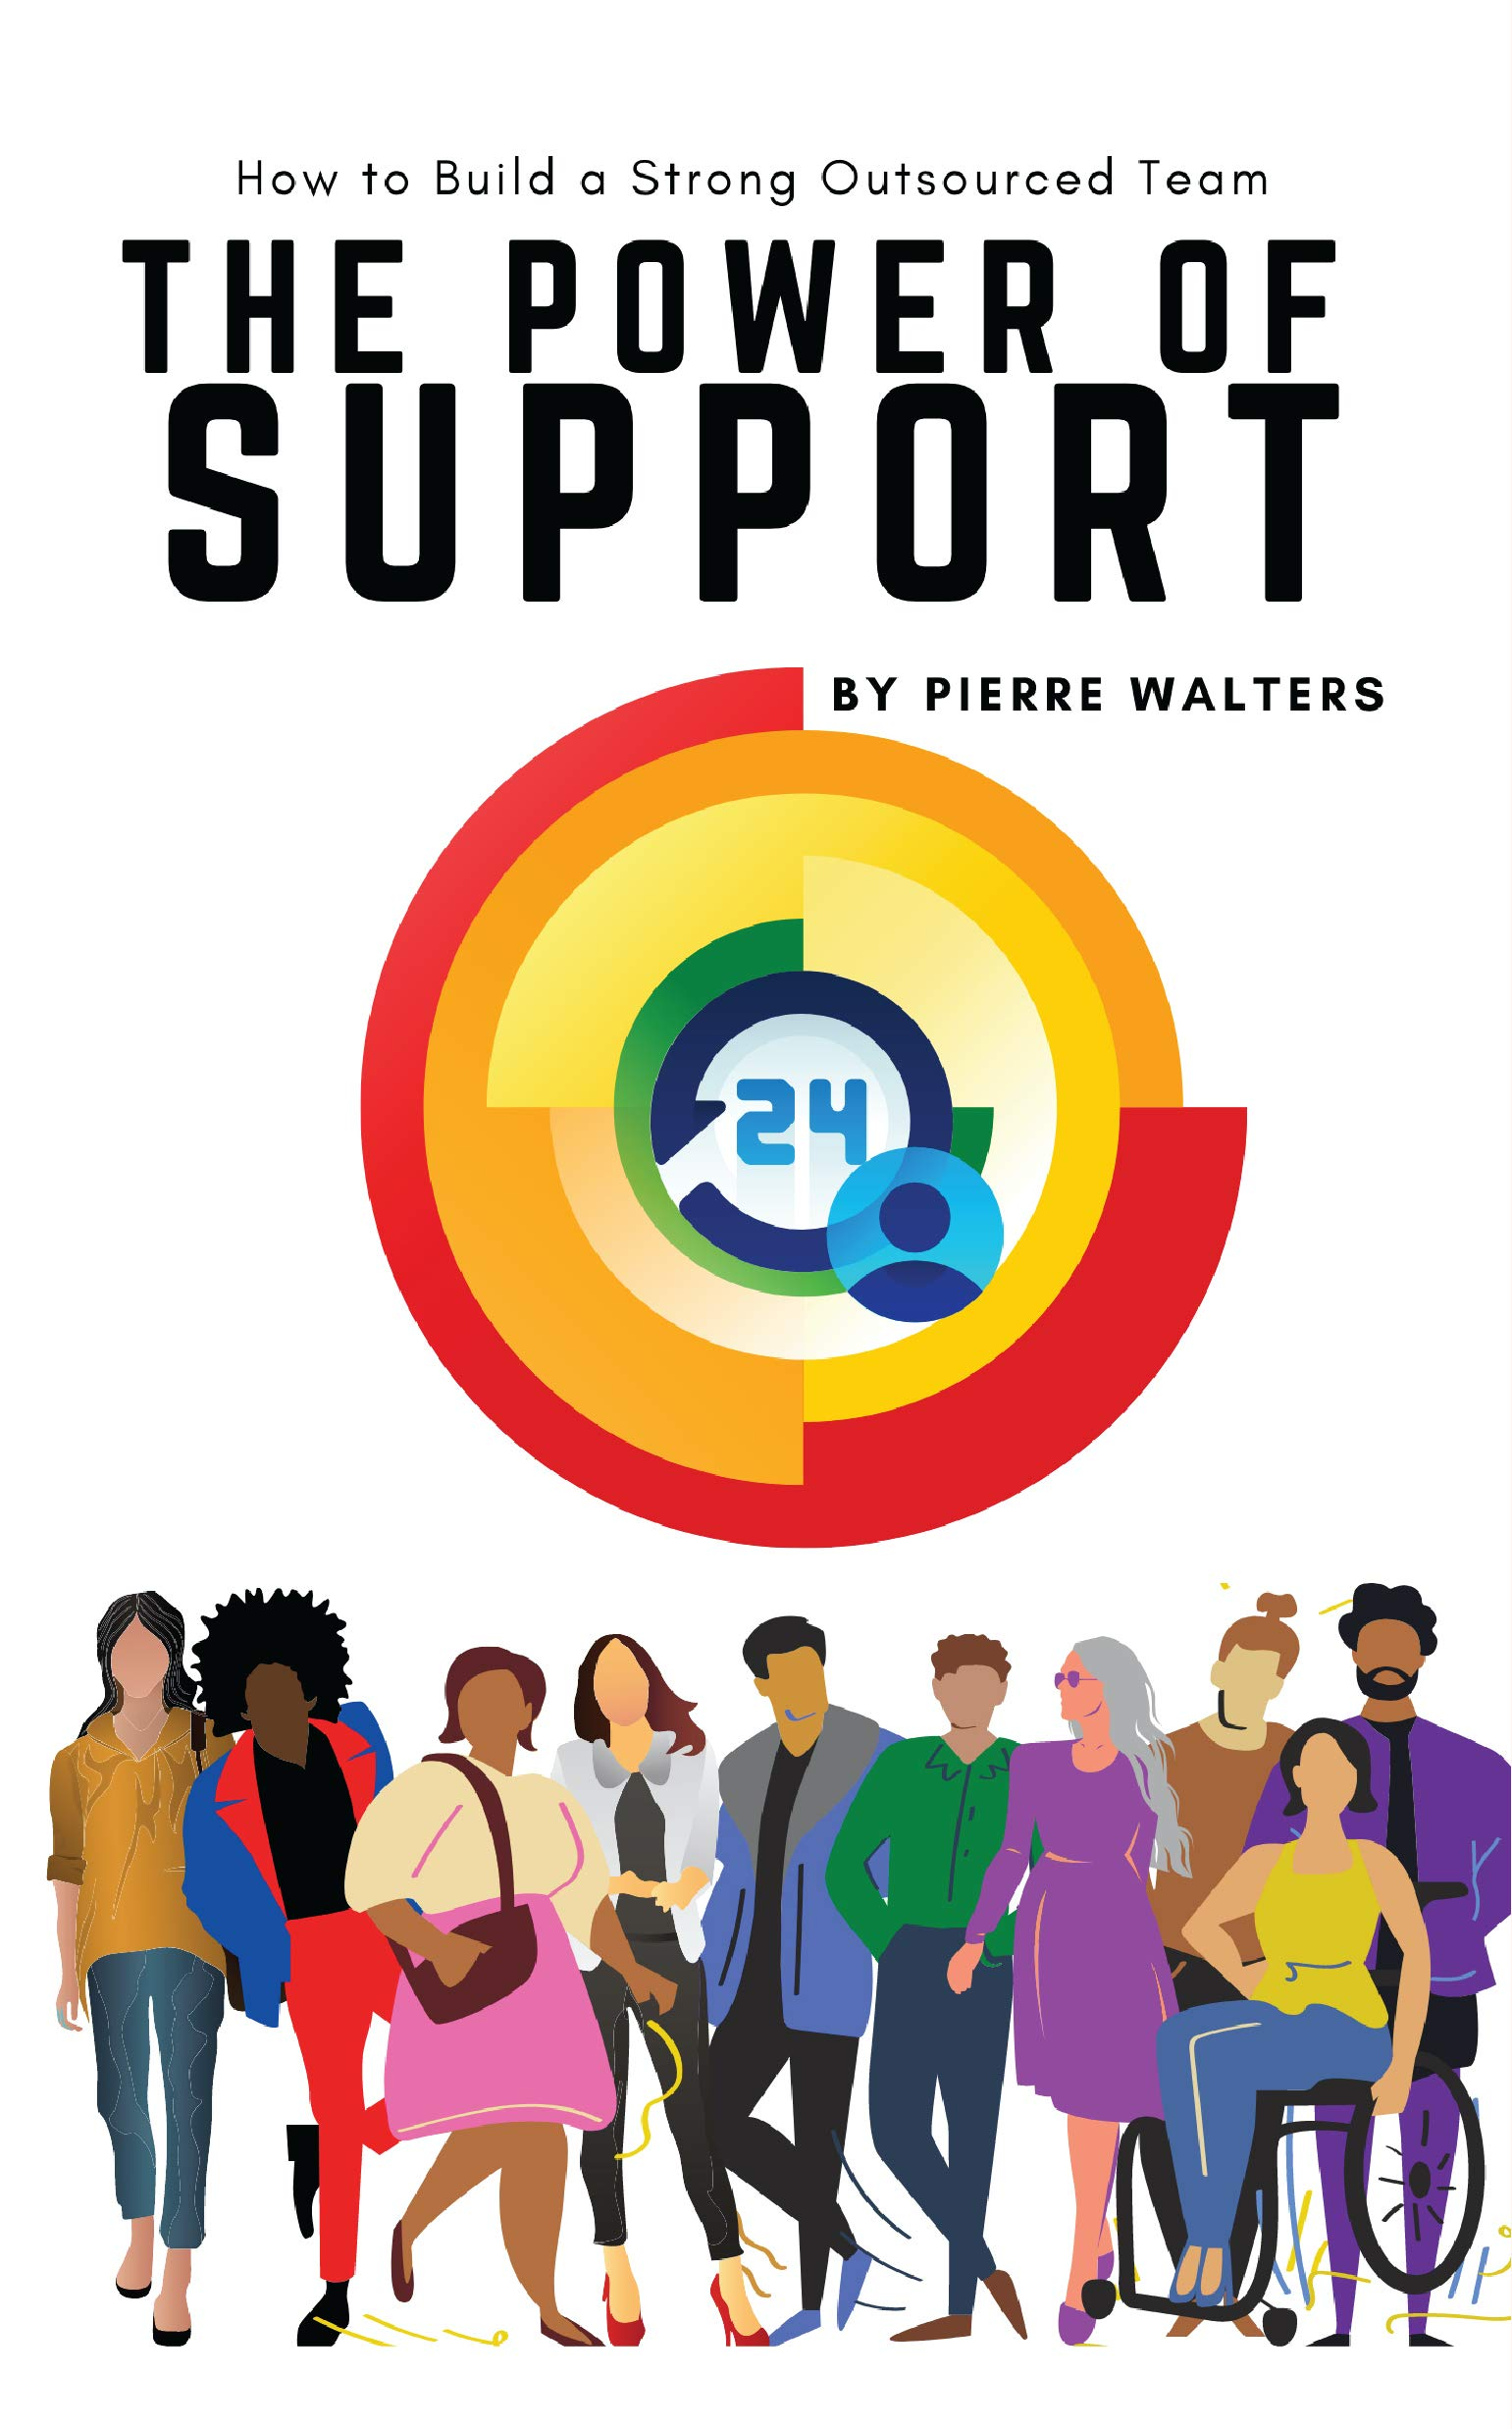 The Power of Support: How to Build a Strong Outsourced Team